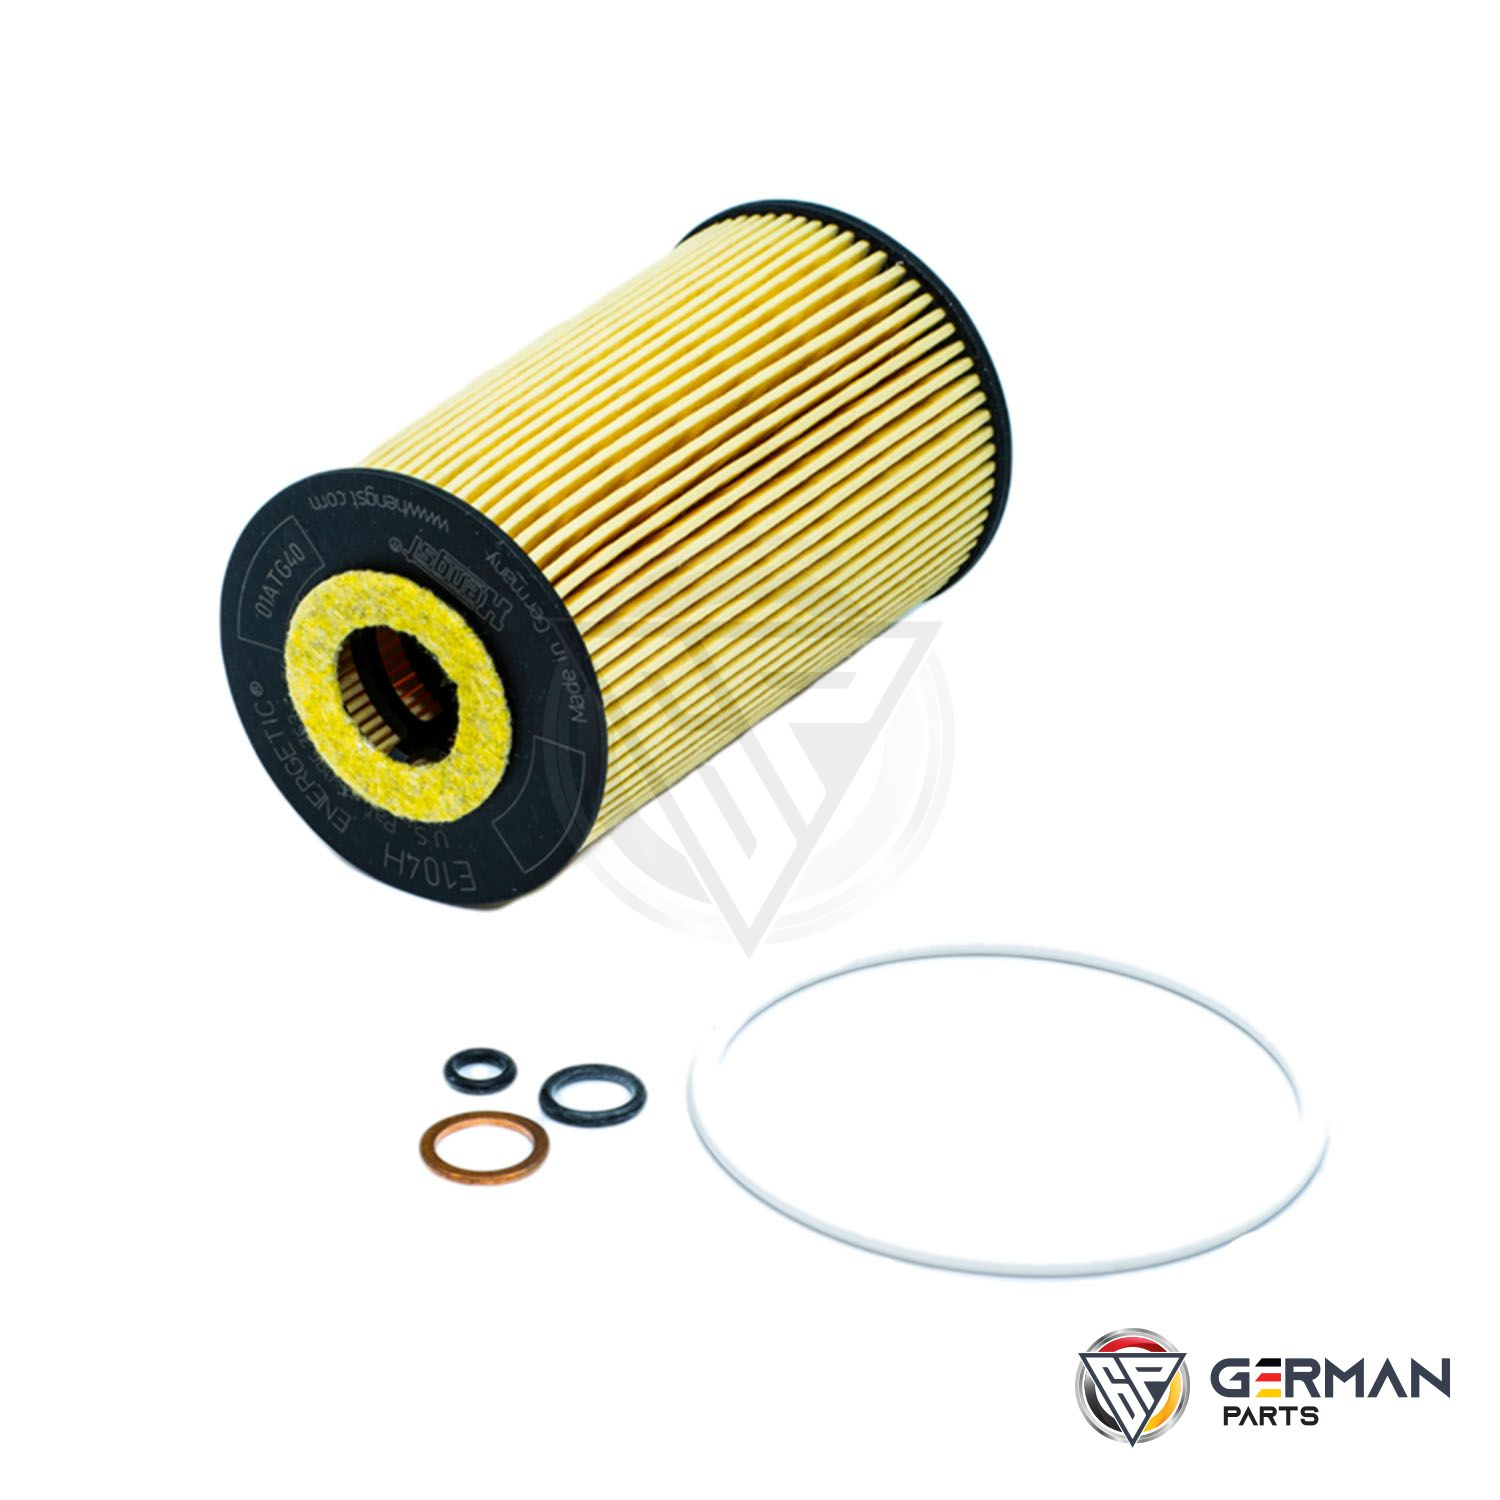 Buy Hengst Oil Filter 11421716192 - German Parts